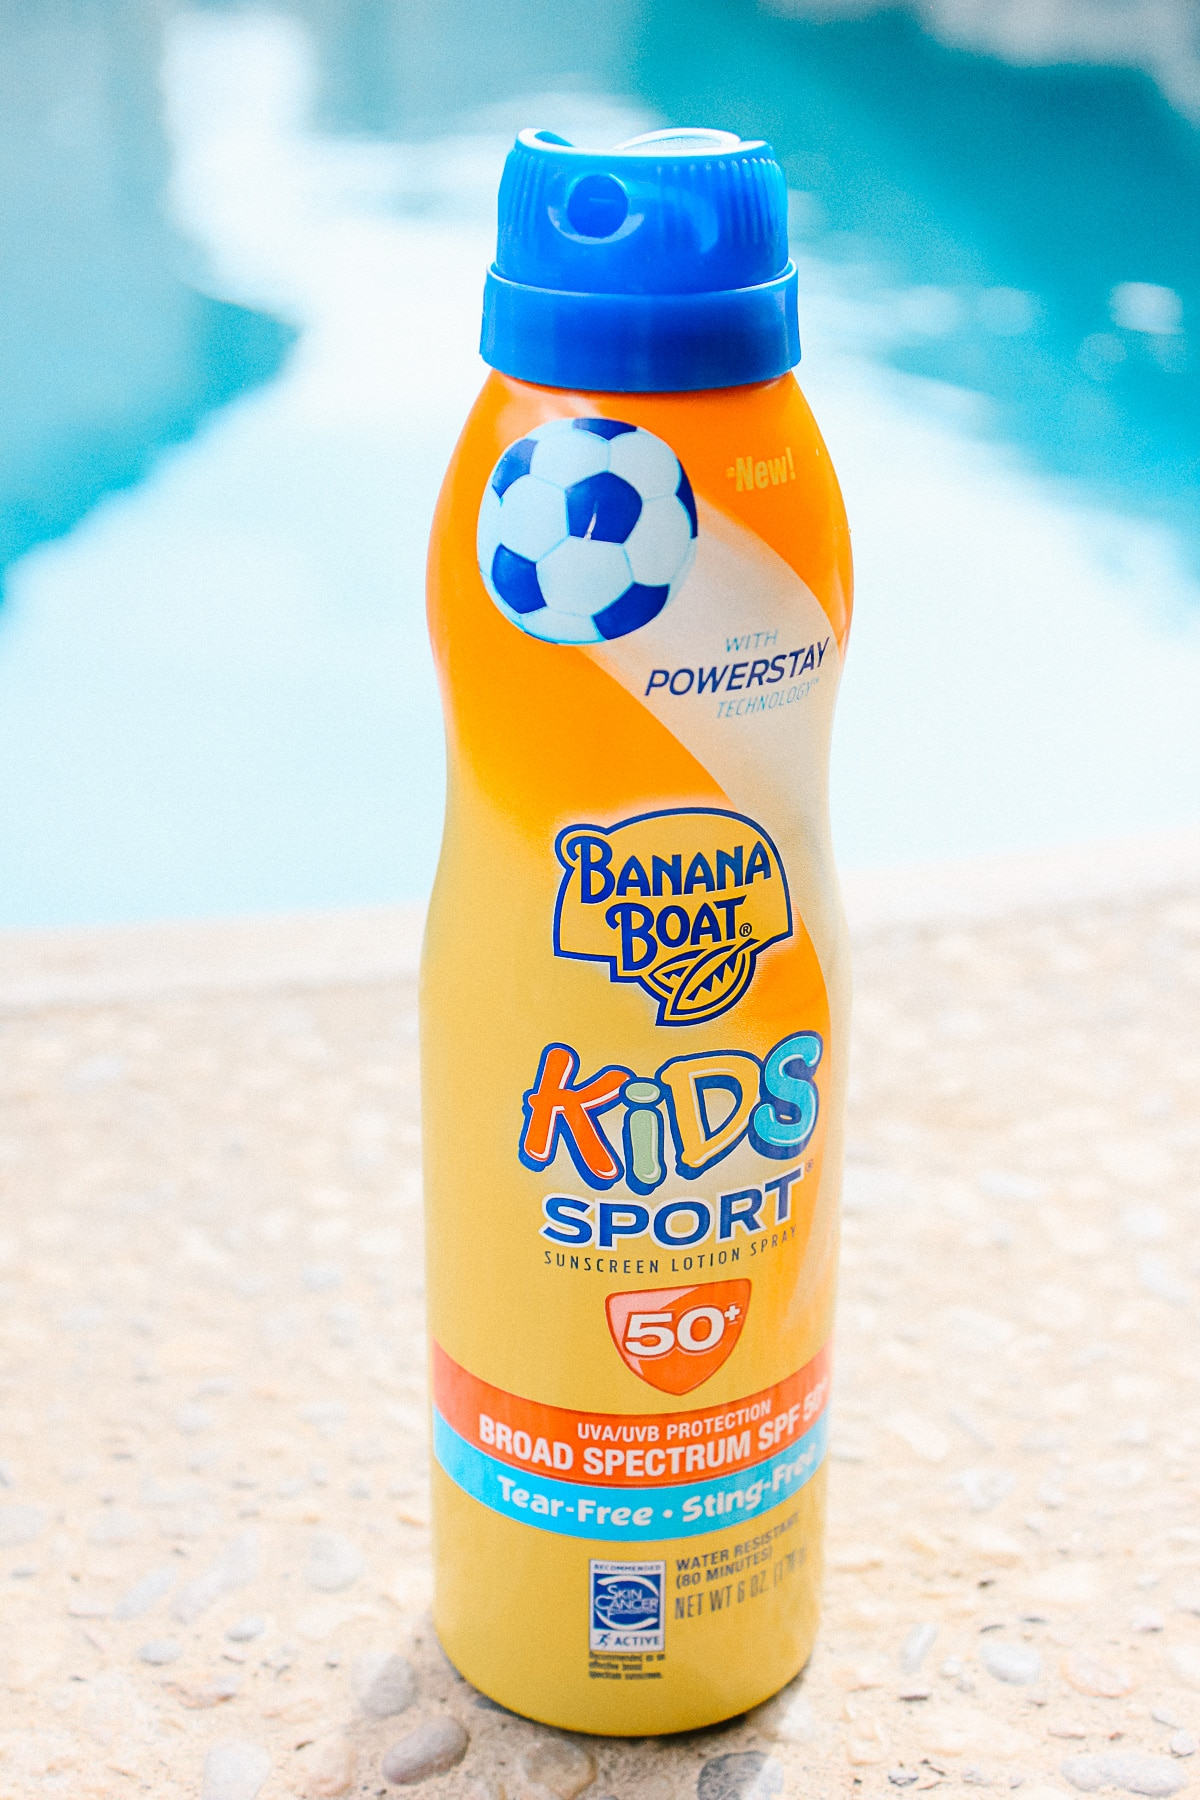 Banana Boat Kids Sport Sunscreen Spray